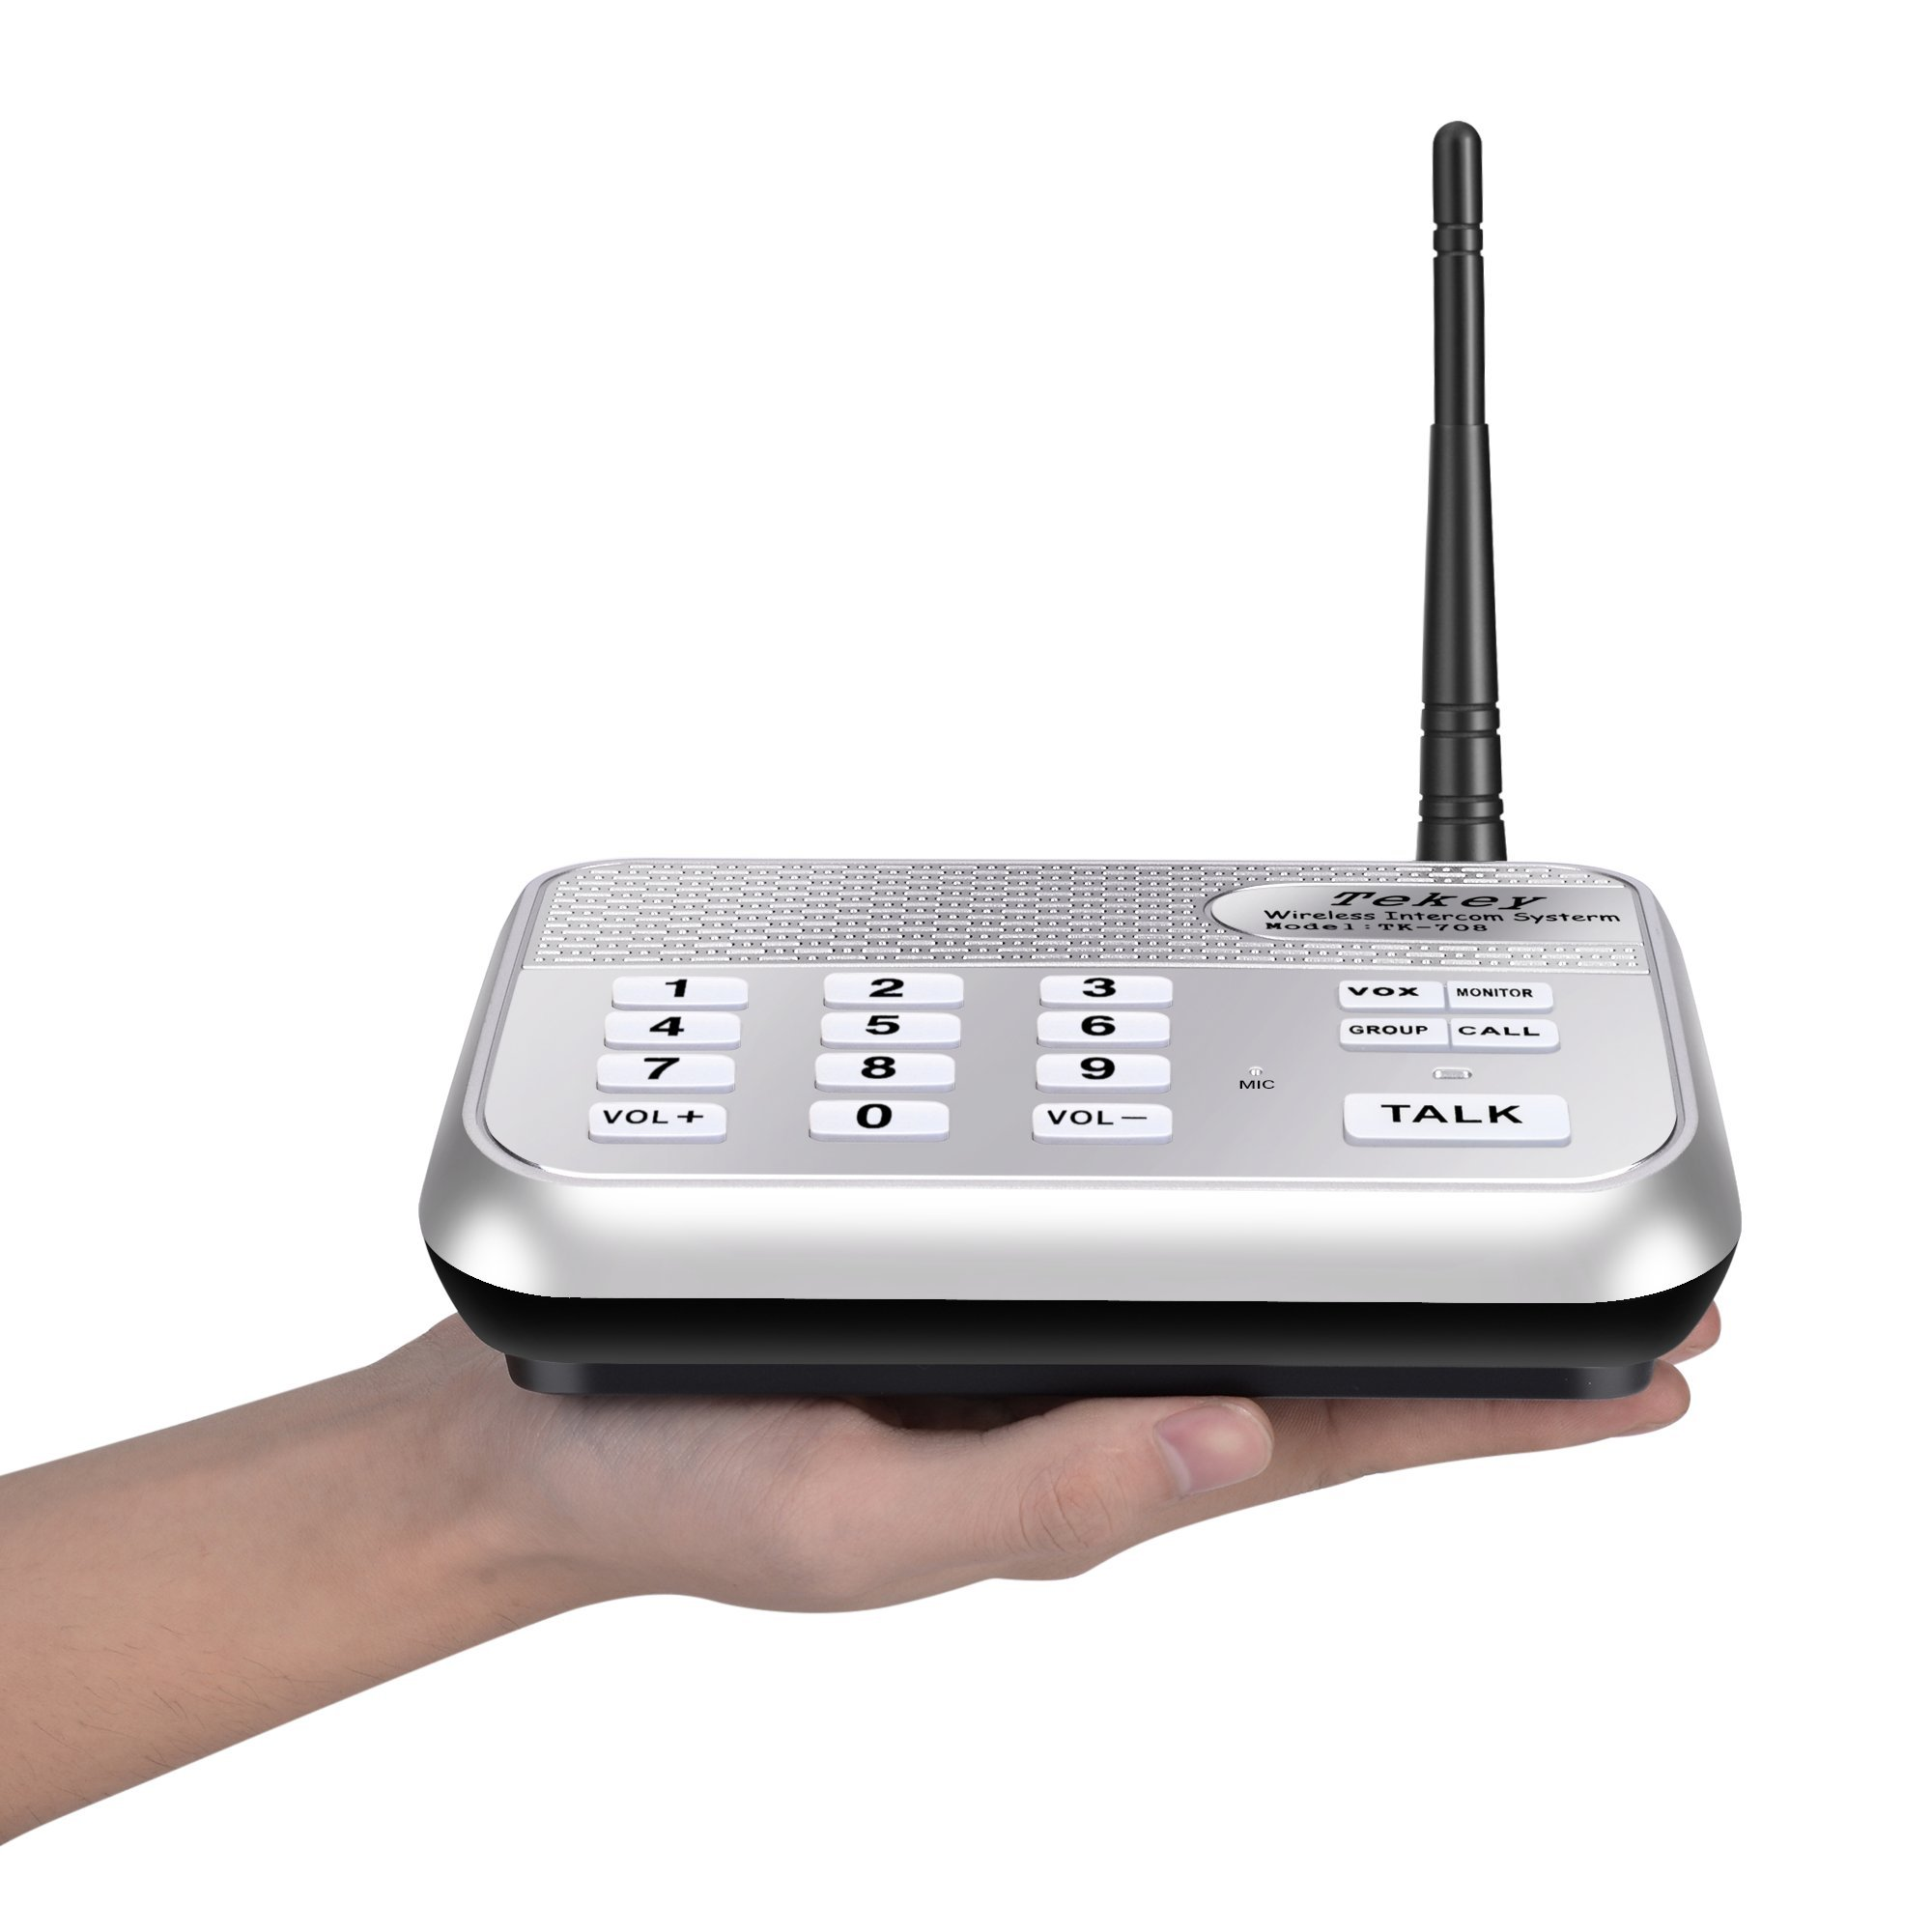 Wireless Intercom System (2017 Version), TekeyTBox 1800 Feet Long Range 10 Channel Digital FM Wireless Intercom System for Home and Office Walkie Talkie System for Outdoor Activitie(4 Stations Silver) by TekeyTBox (Image #7)